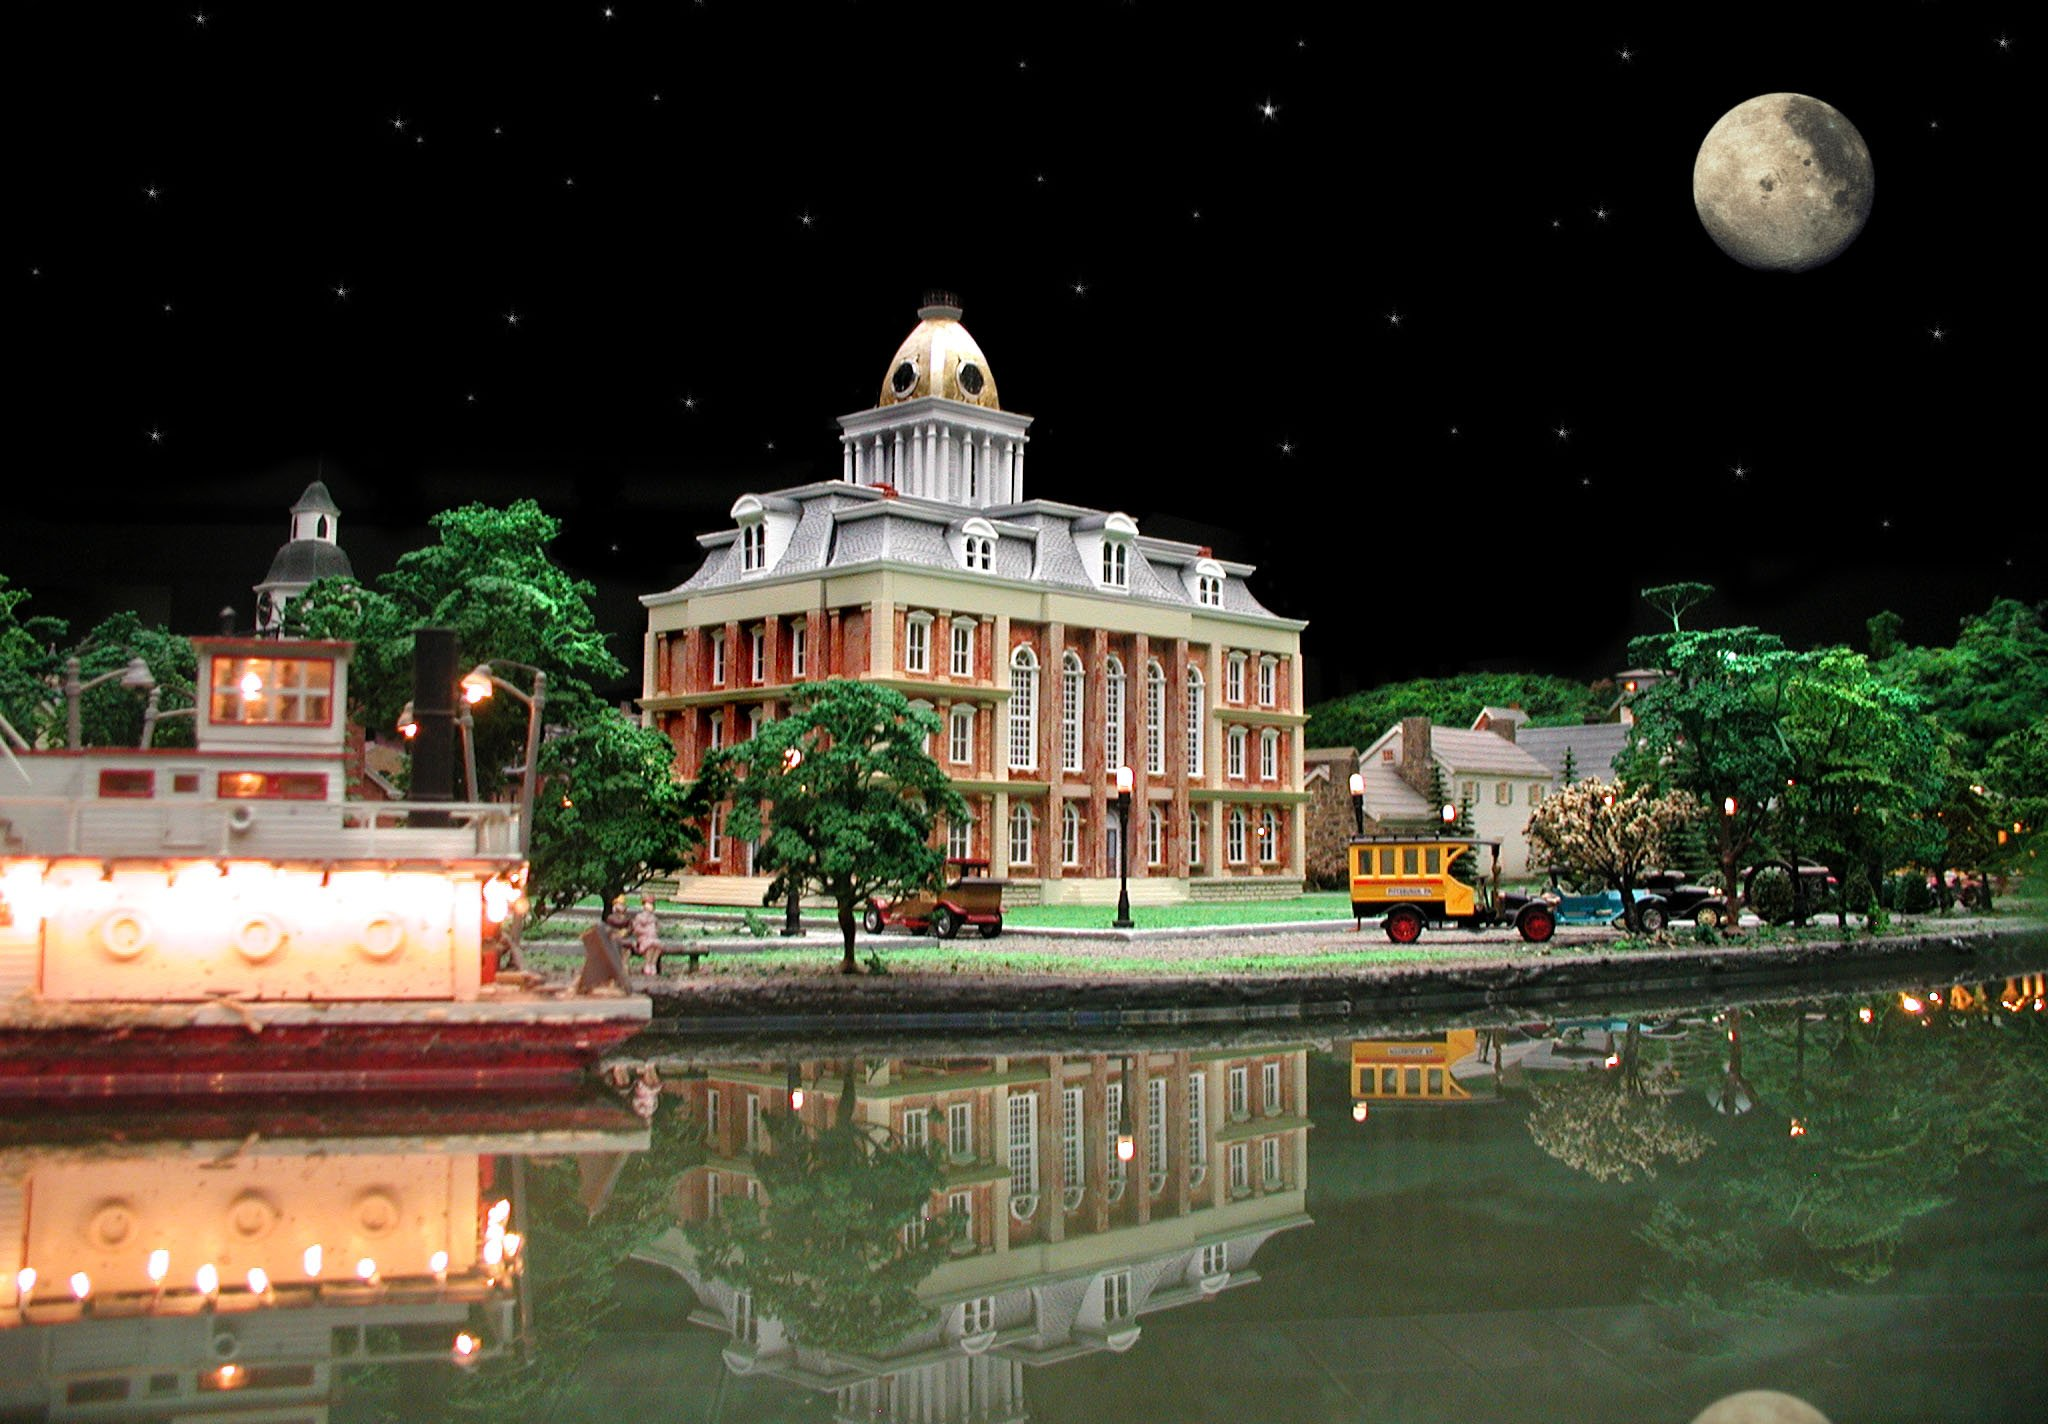 The Old Courthouse, in miniature, within the Carnegie Science Center's model railroad.